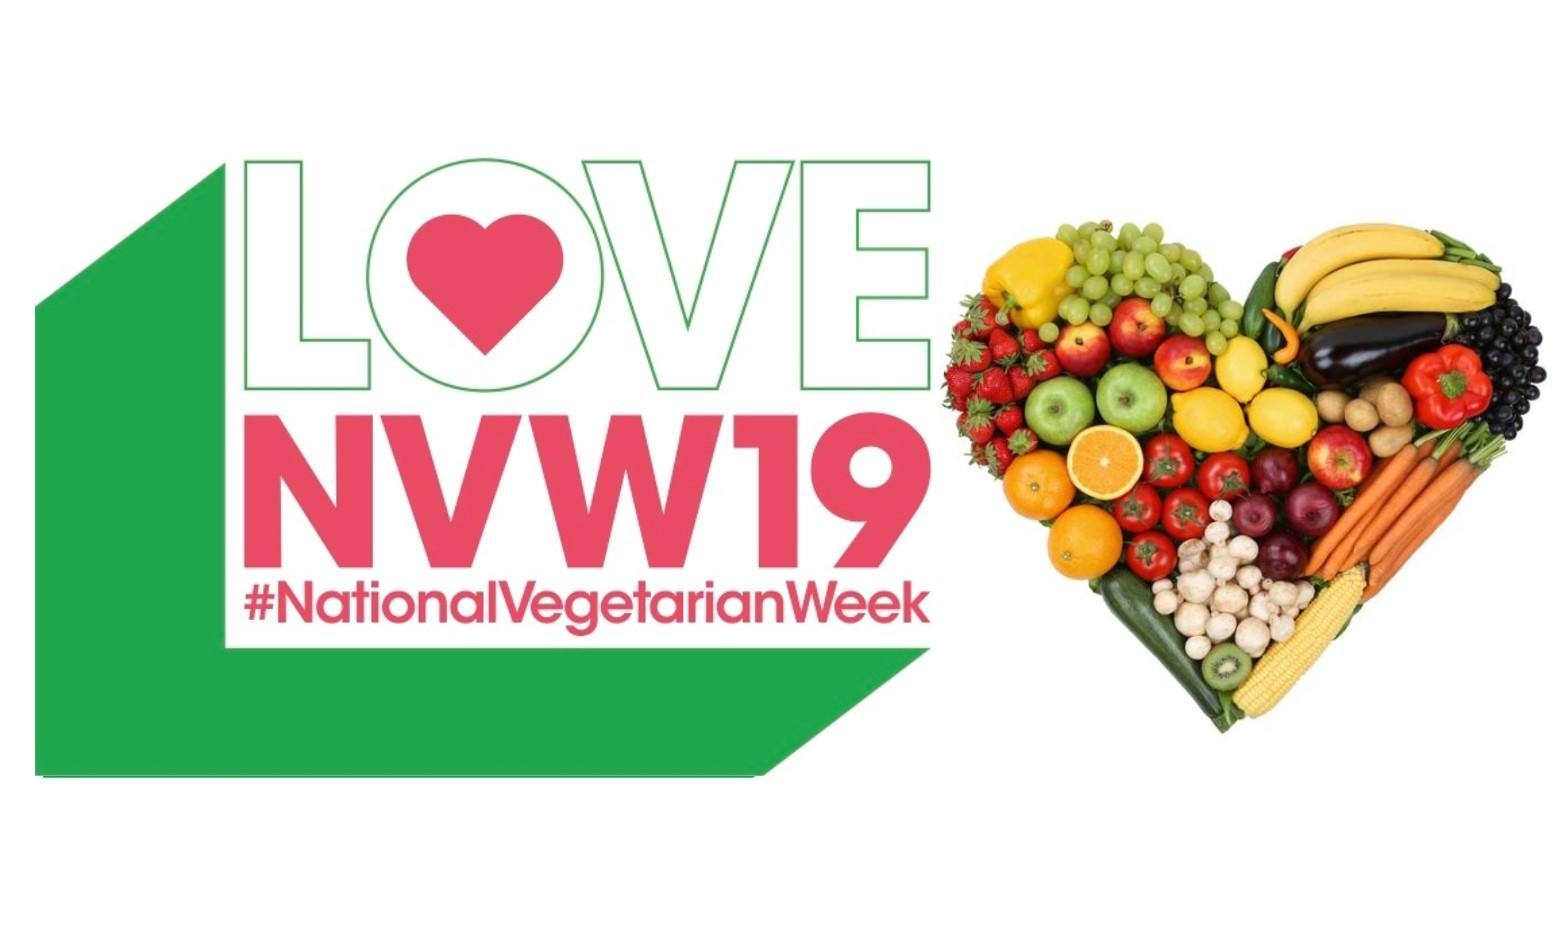 National Vegetarian Awareness Week 2019